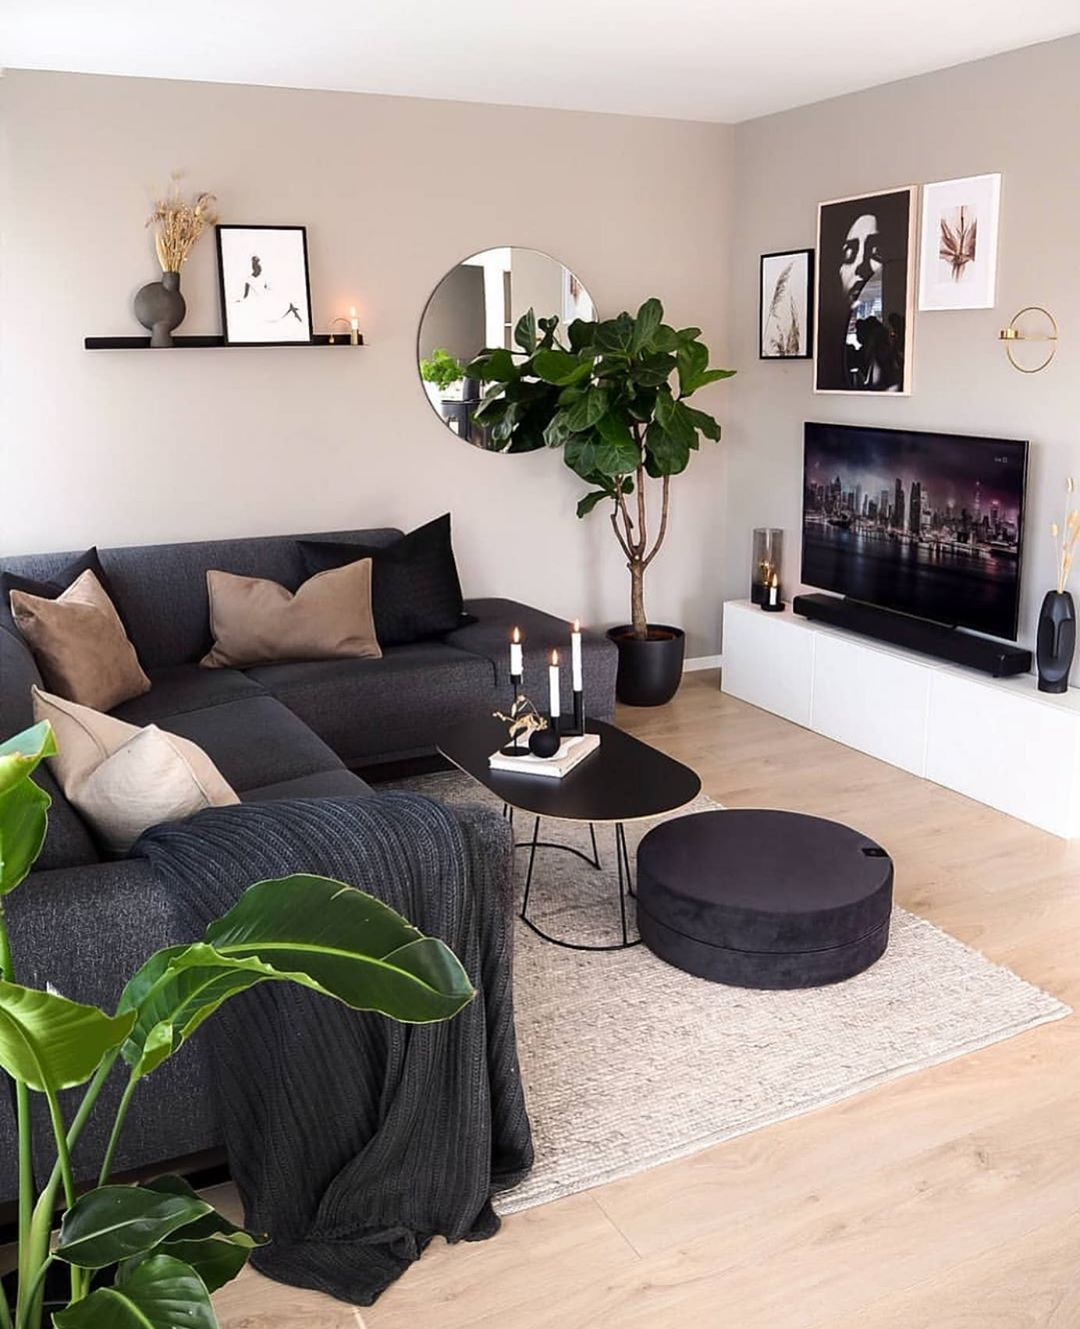 "Home Interior Design Ideas For Small Living Room: Interior & Decor Inspiration On Instagram: ""Wishing You"